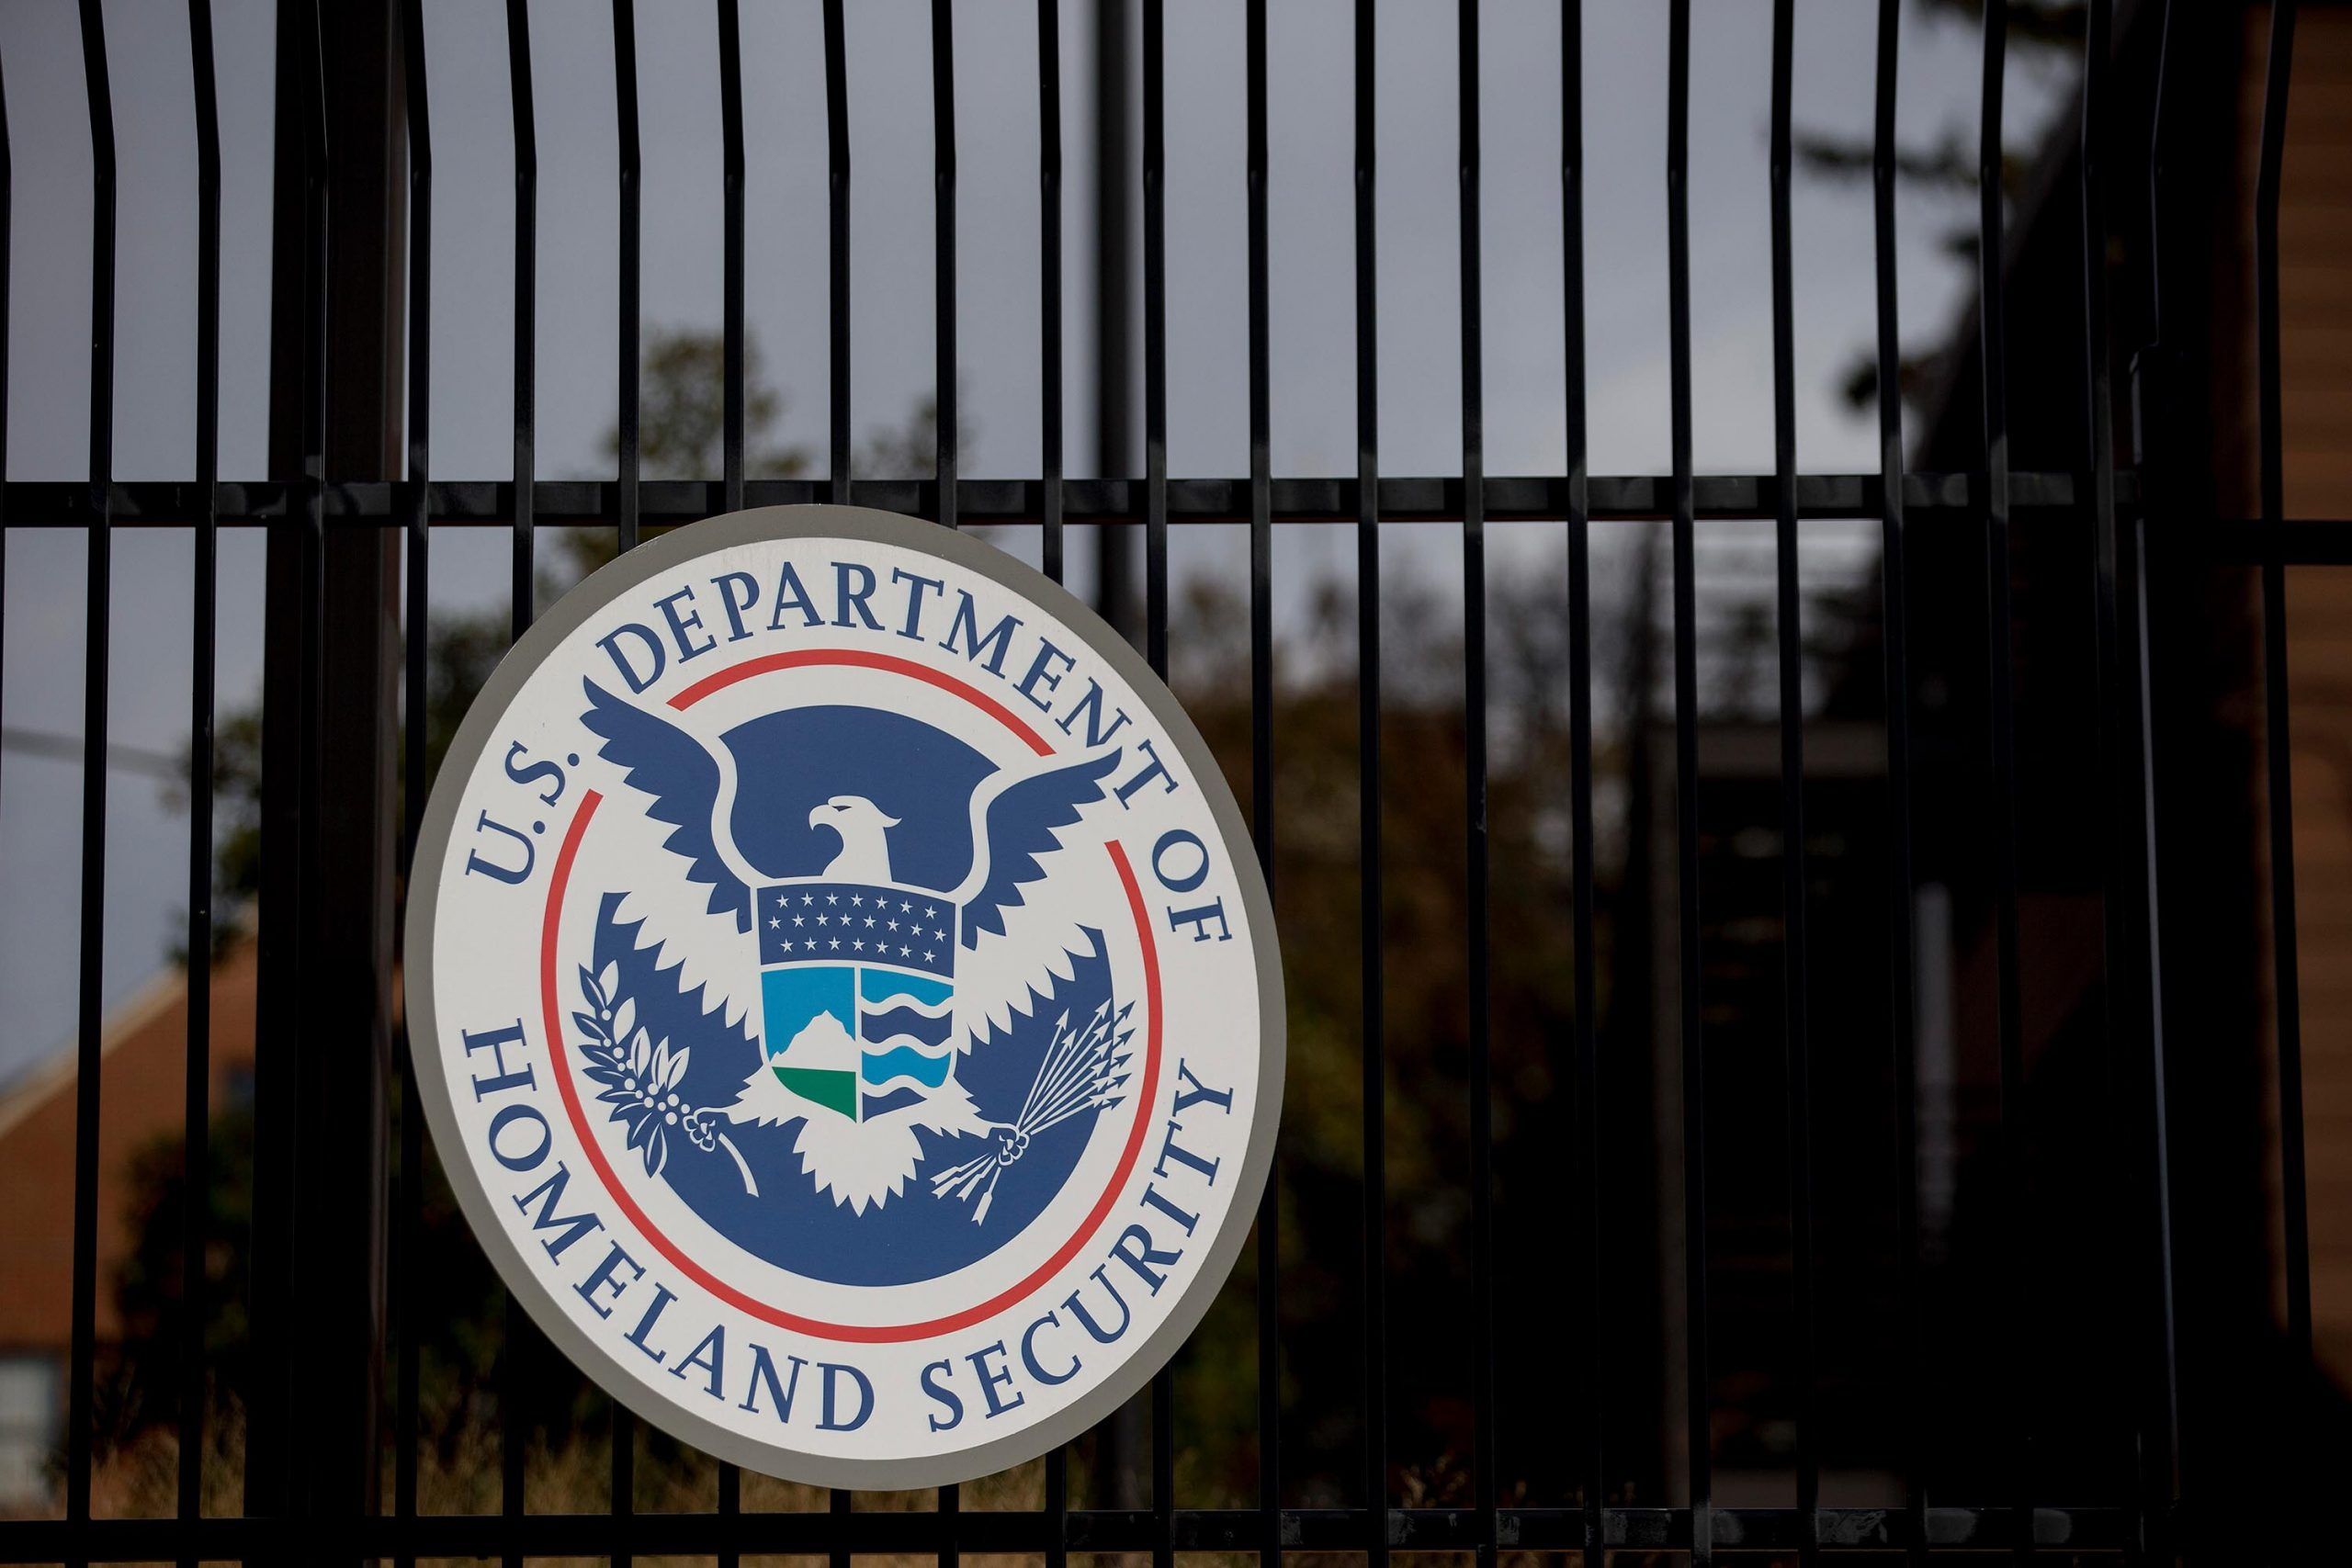 <i>Andrew Harrer/Bloomberg/Getty Images</i><br/>The U.S. Department of Homeland Security (DHS) seal hangs on a fence at the agency's headquarters in Washington